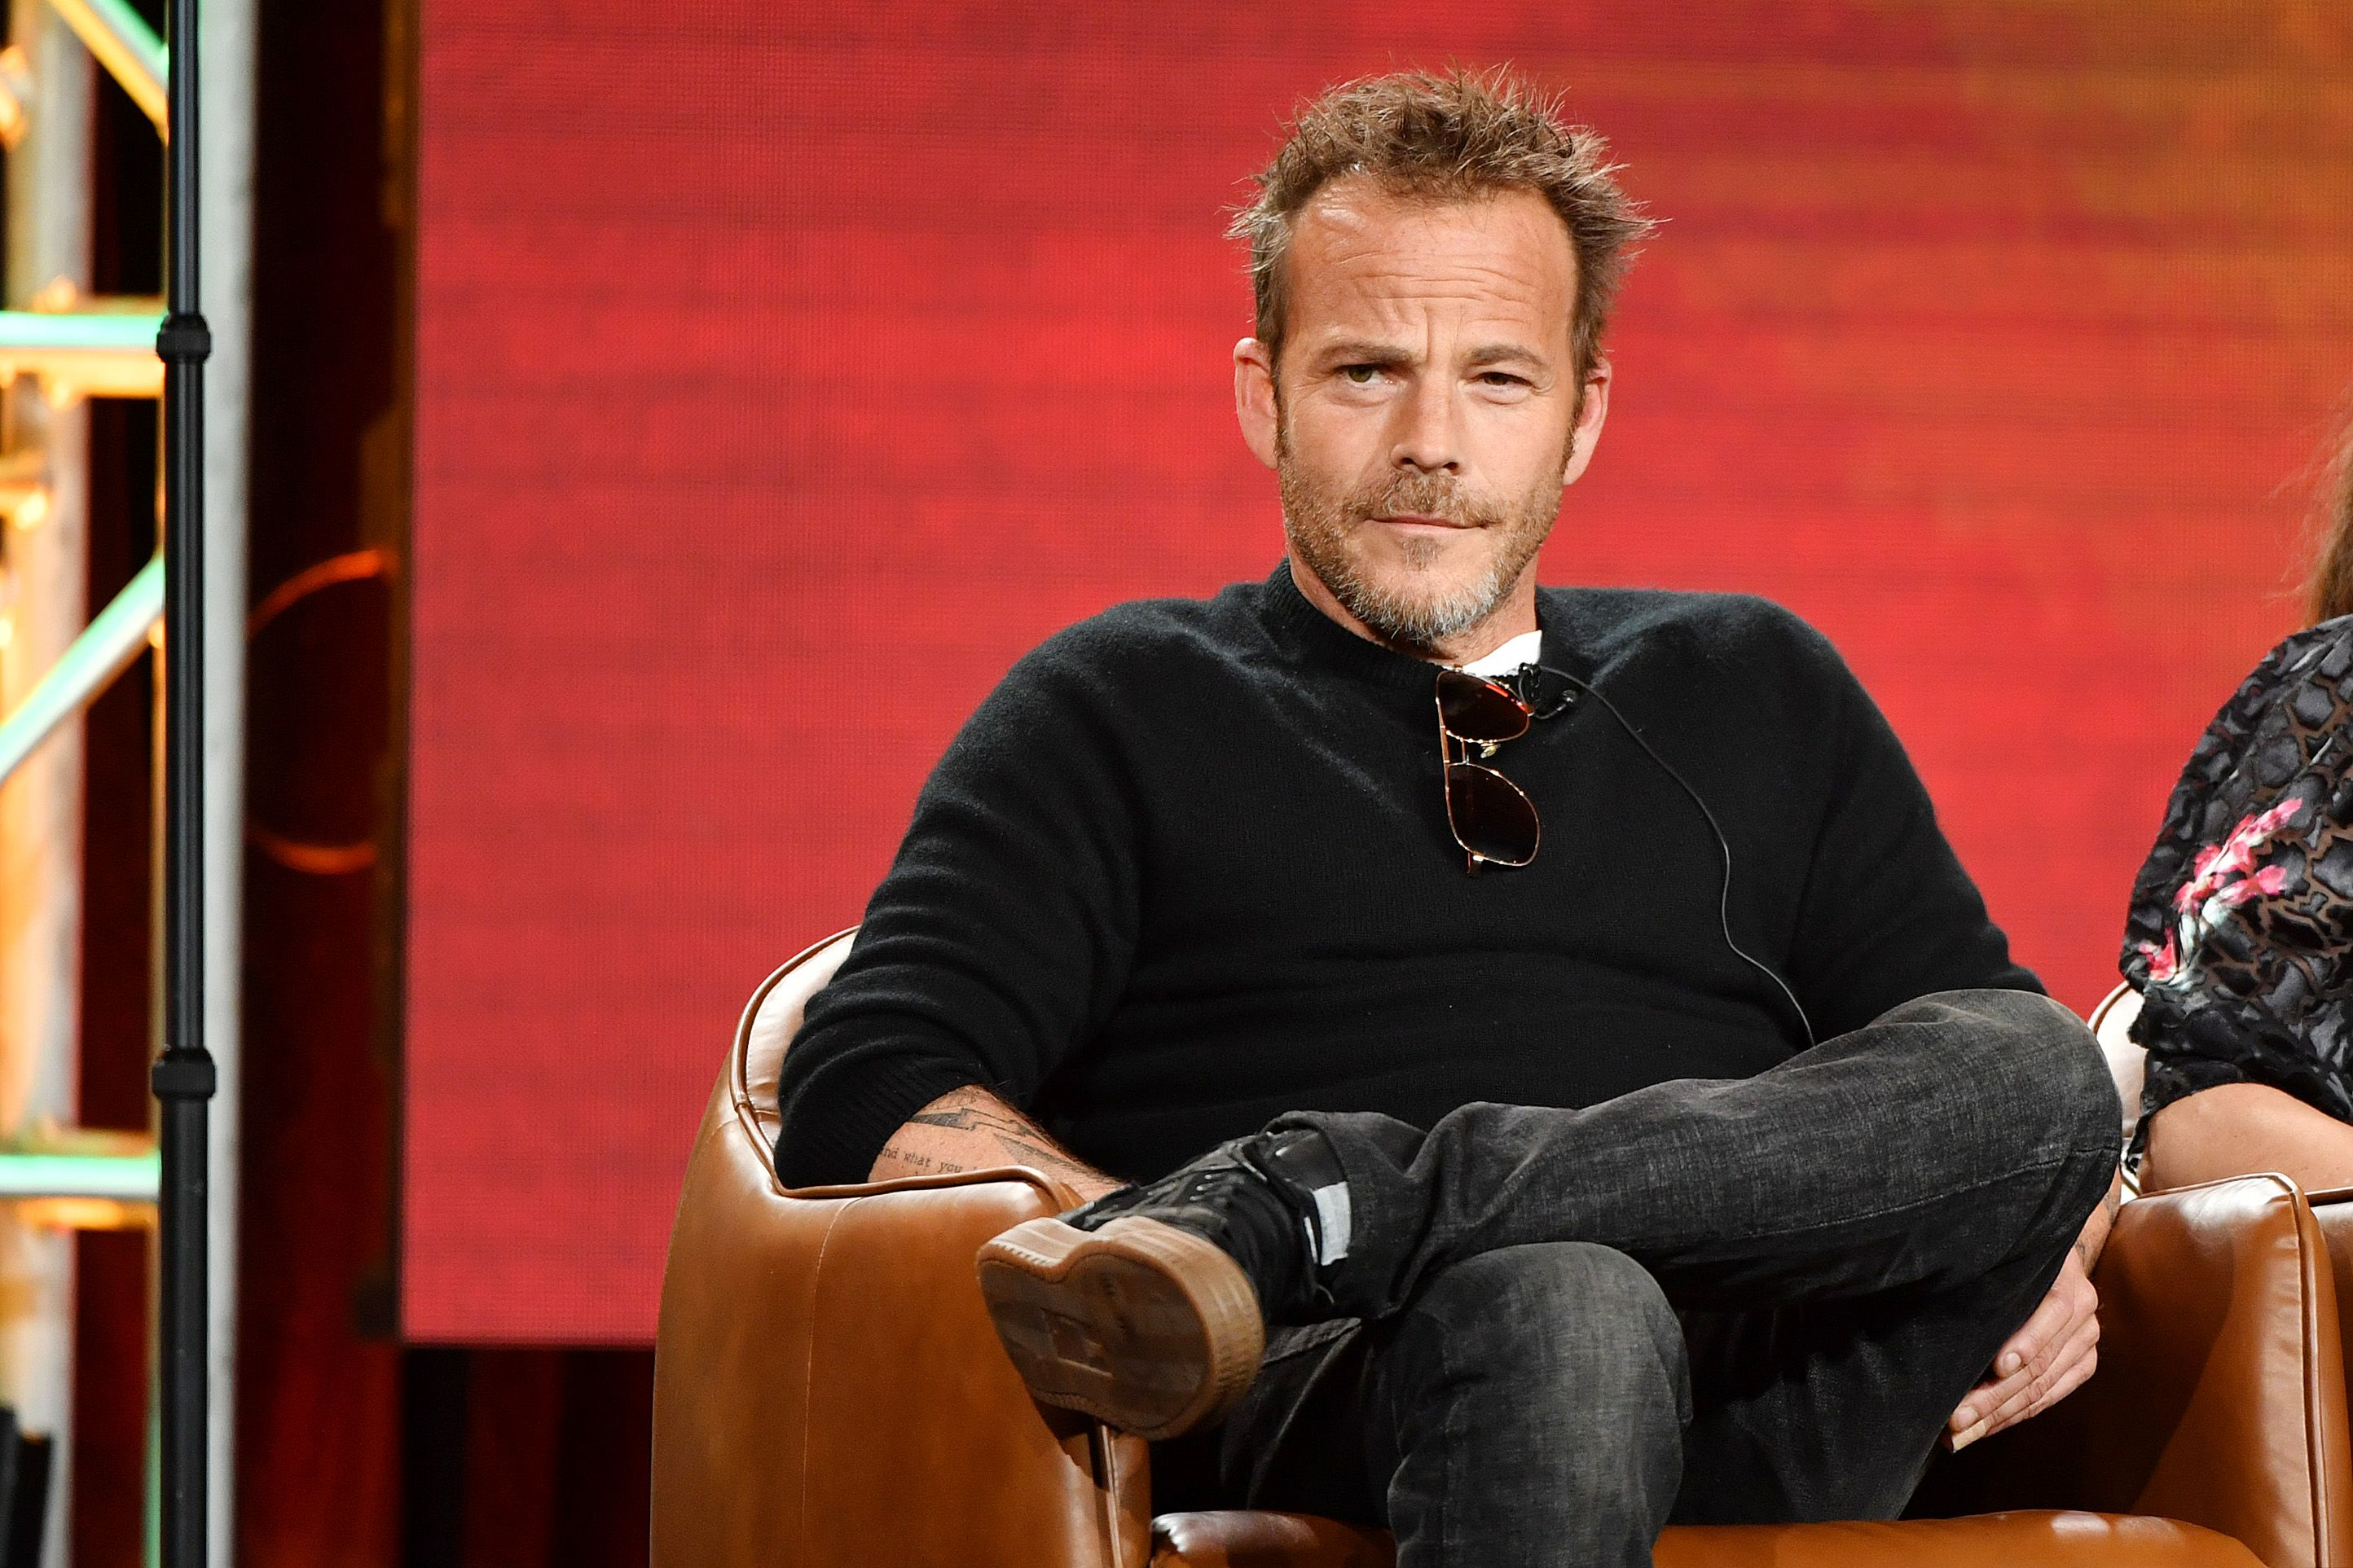 Actor Stephen Dorff sits in a chair.